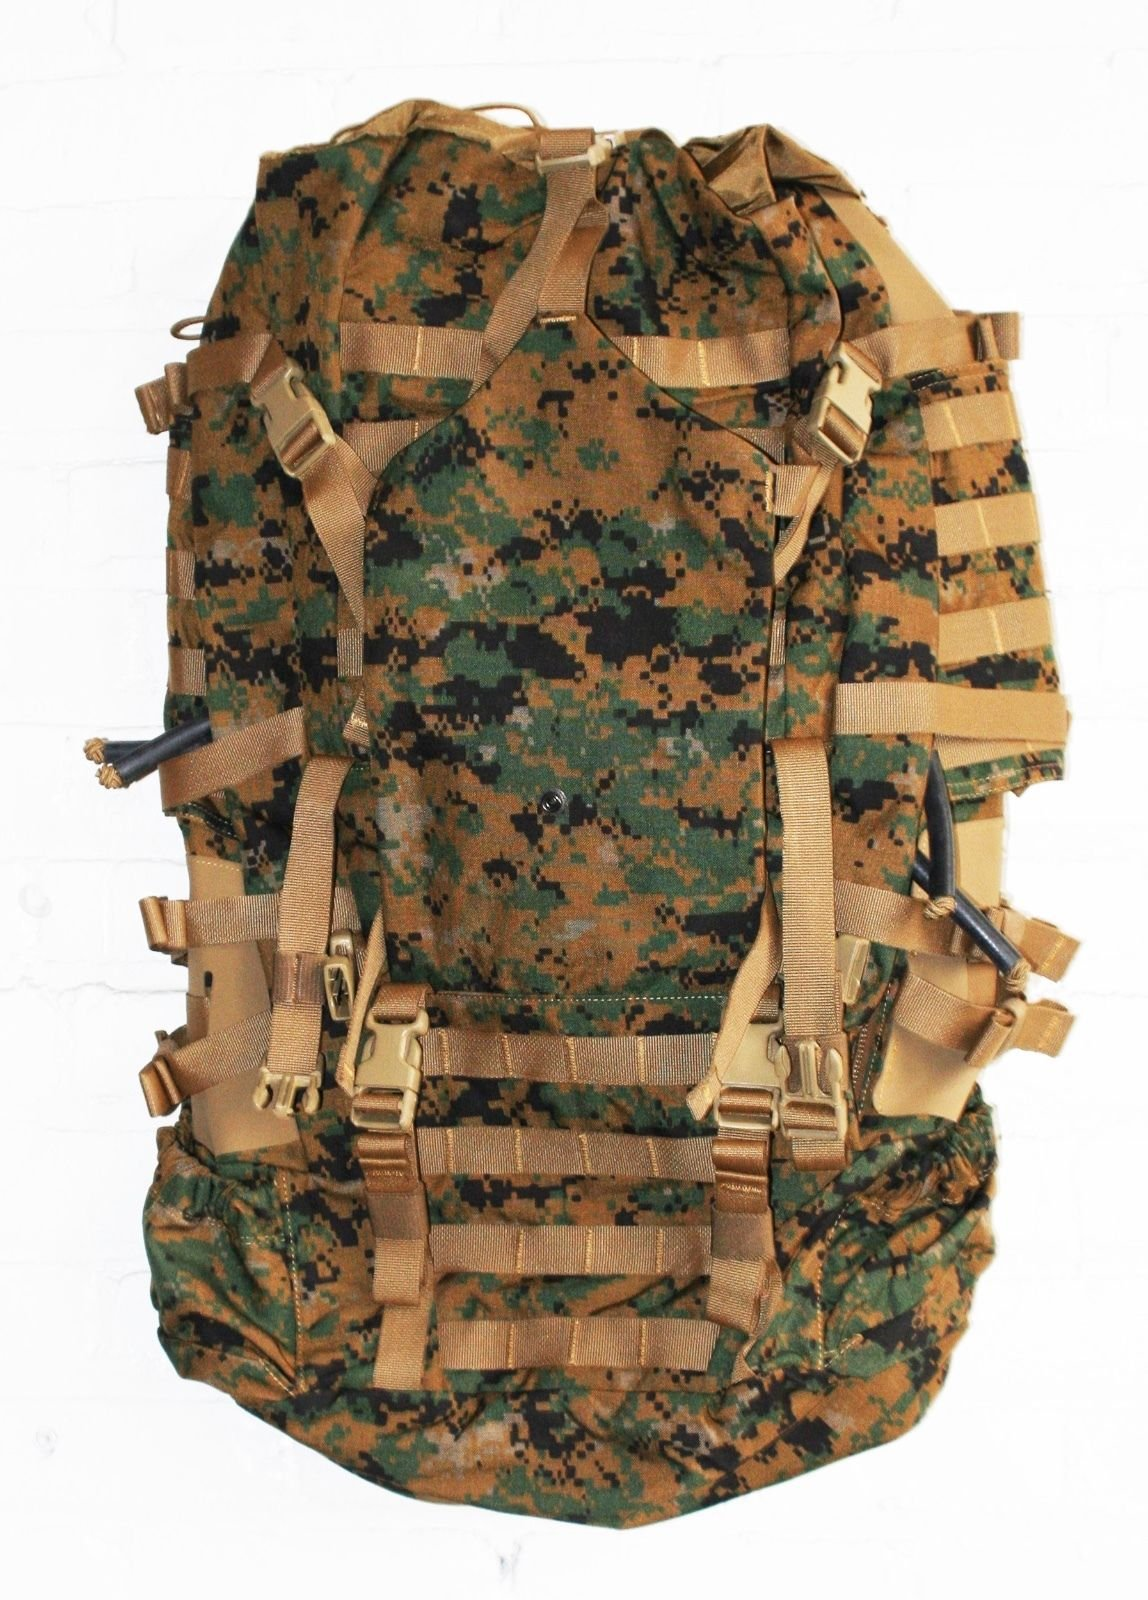 USMC Field Pack, MARPAT Main Pack, Woodland Digital Camouflage, Spare Part, Component of Improved Load Bearing Equipment (ILBE) by Arc'teryx (Image #1)